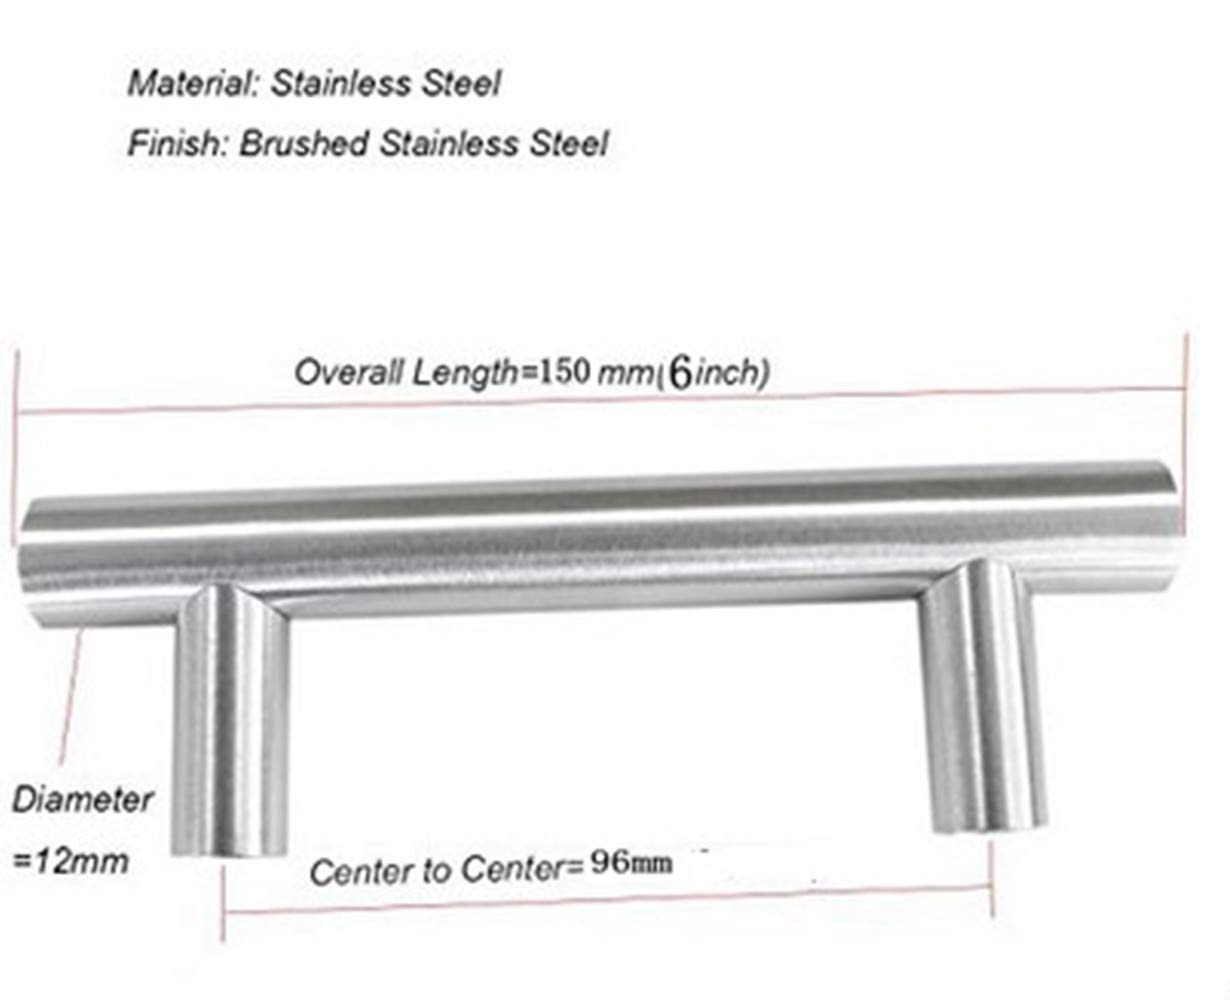 12mm Stainless Steel Kitchen Cabinet Handles T Bar Pull (6'' Overall Length,3.8'' Hole Centers) by Wang-Data (Image #2)